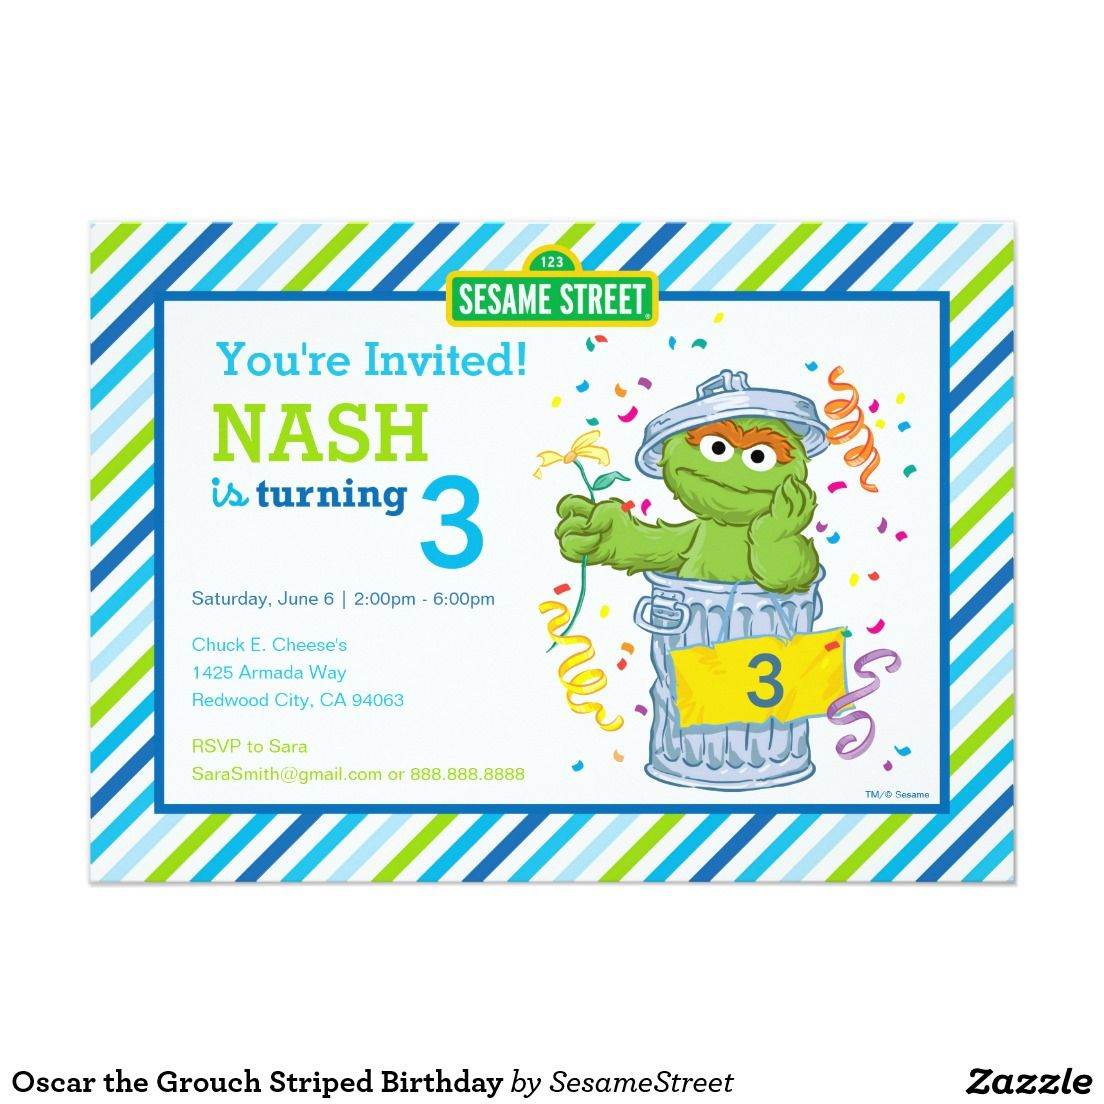 Oscar The Grouch Striped Birthday Card GrouchSesame Street